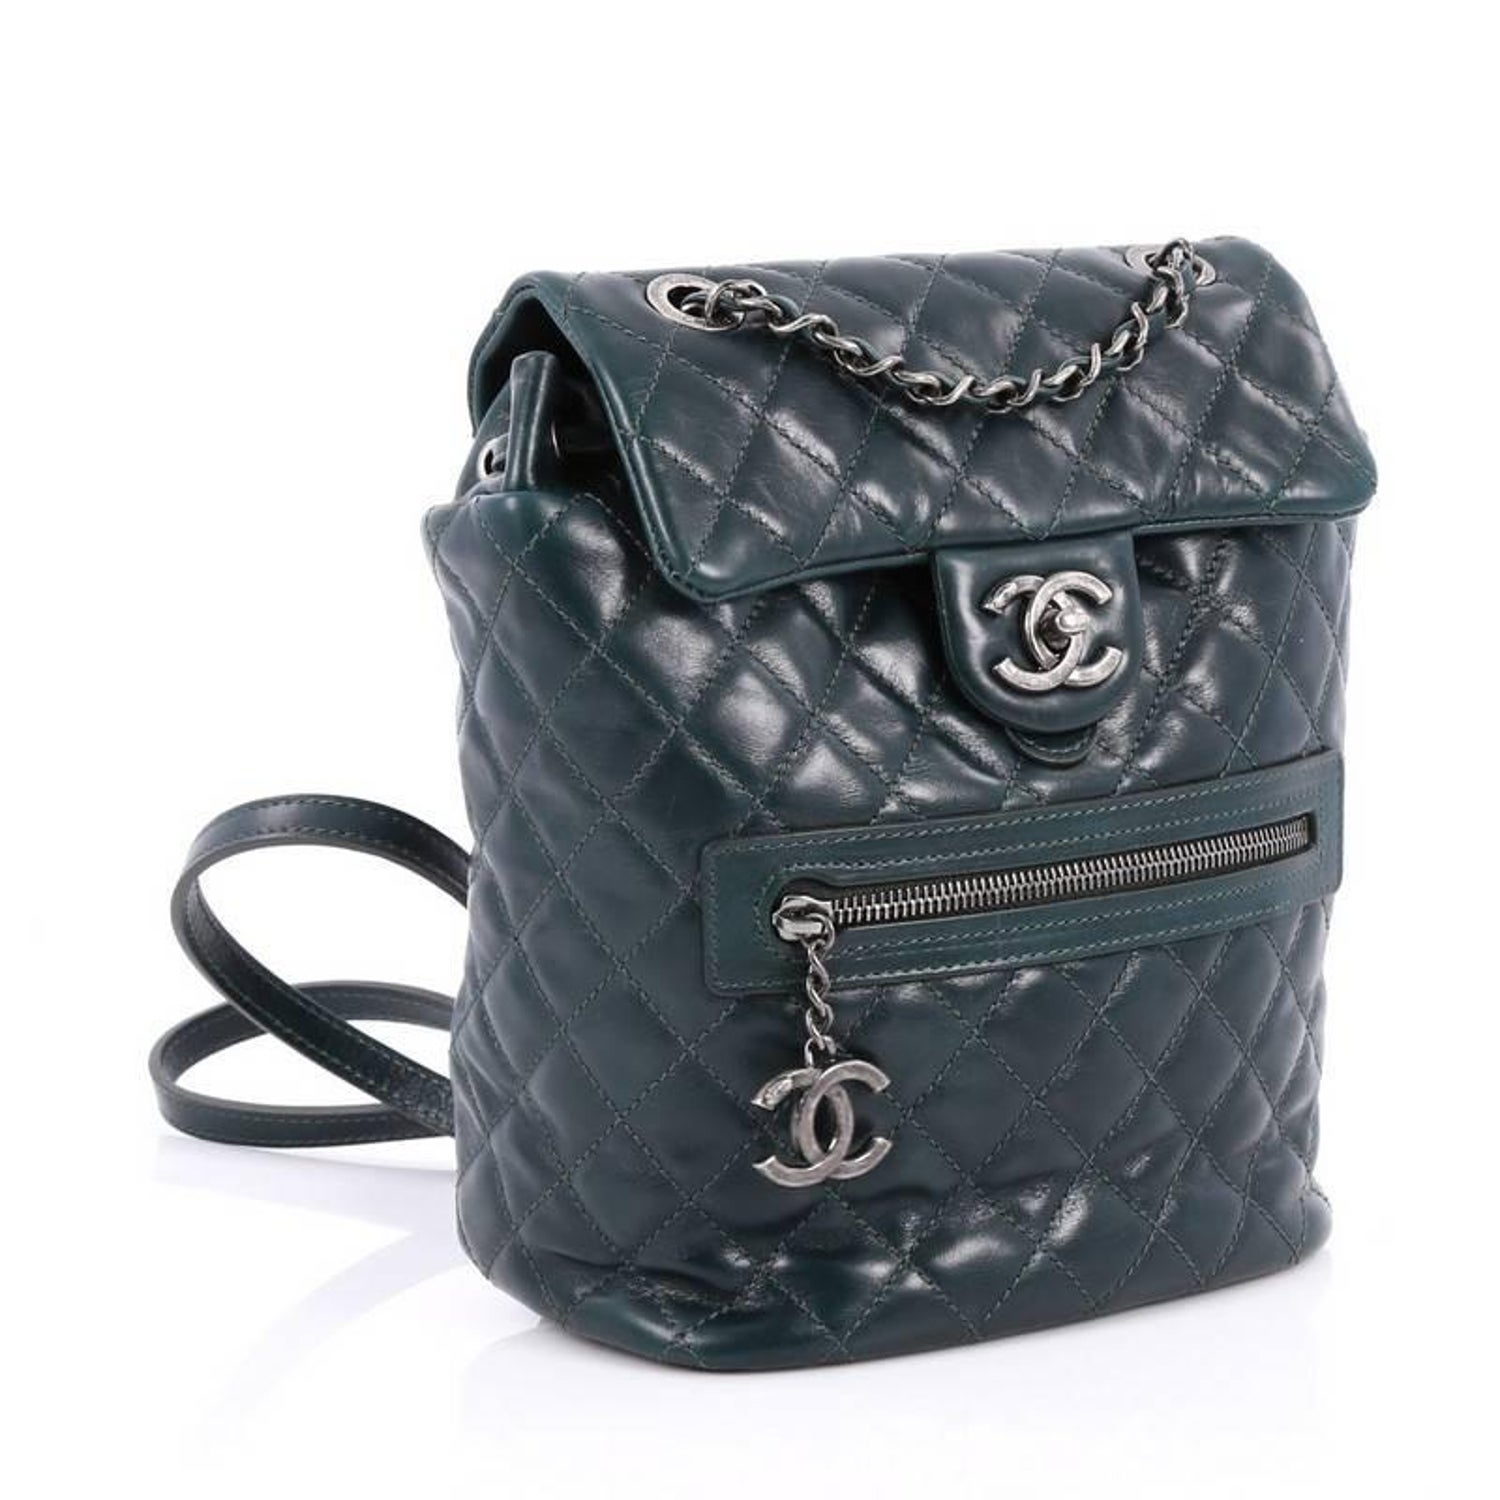 ff41a0e66262 Chanel Mountain Backpack Quilted Glazed Calfskin Small at 1stdibs